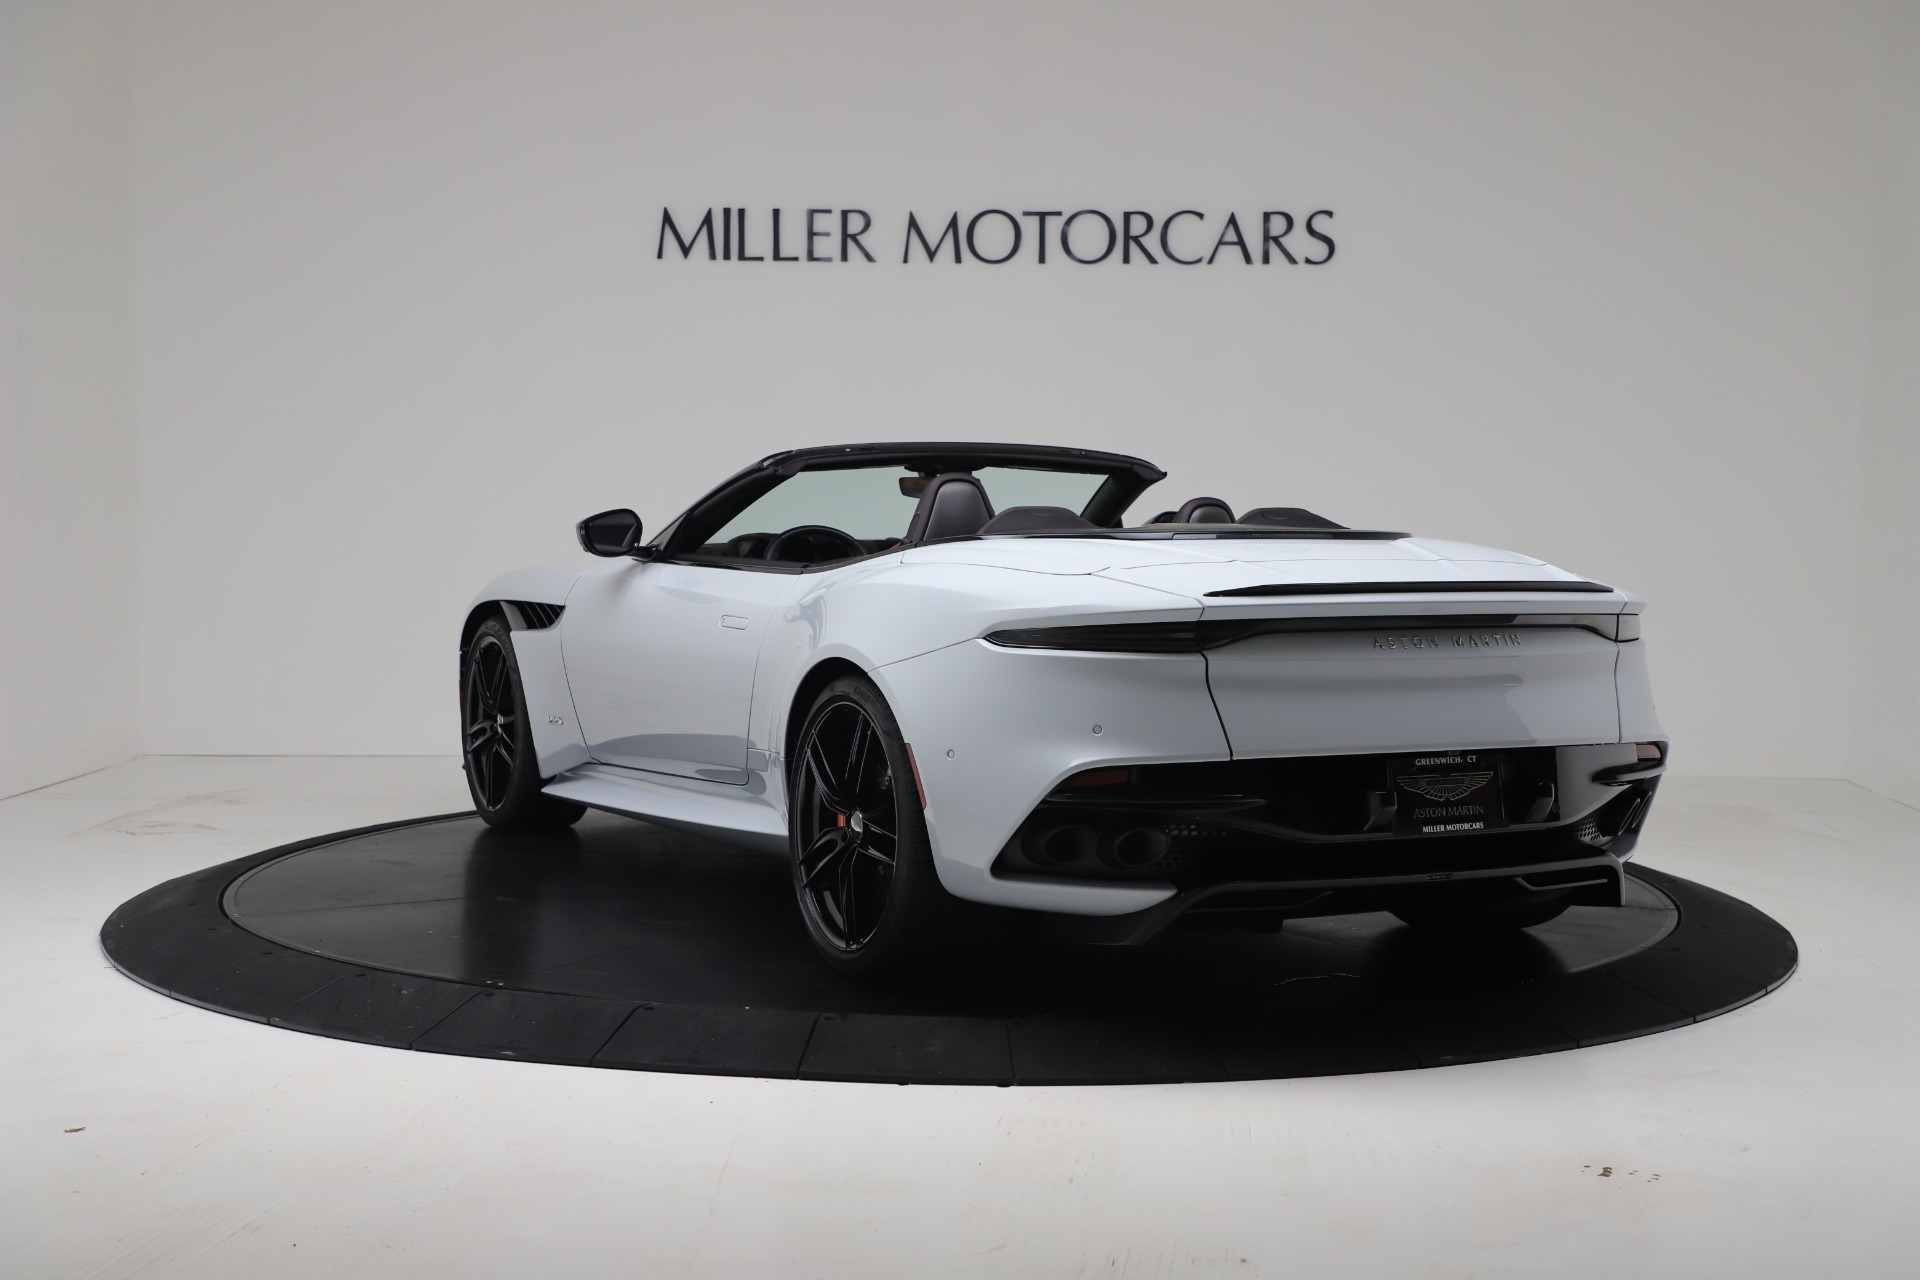 New 2020 Aston Martin DBS Superleggera For Sale In Westport, CT 3484_p4